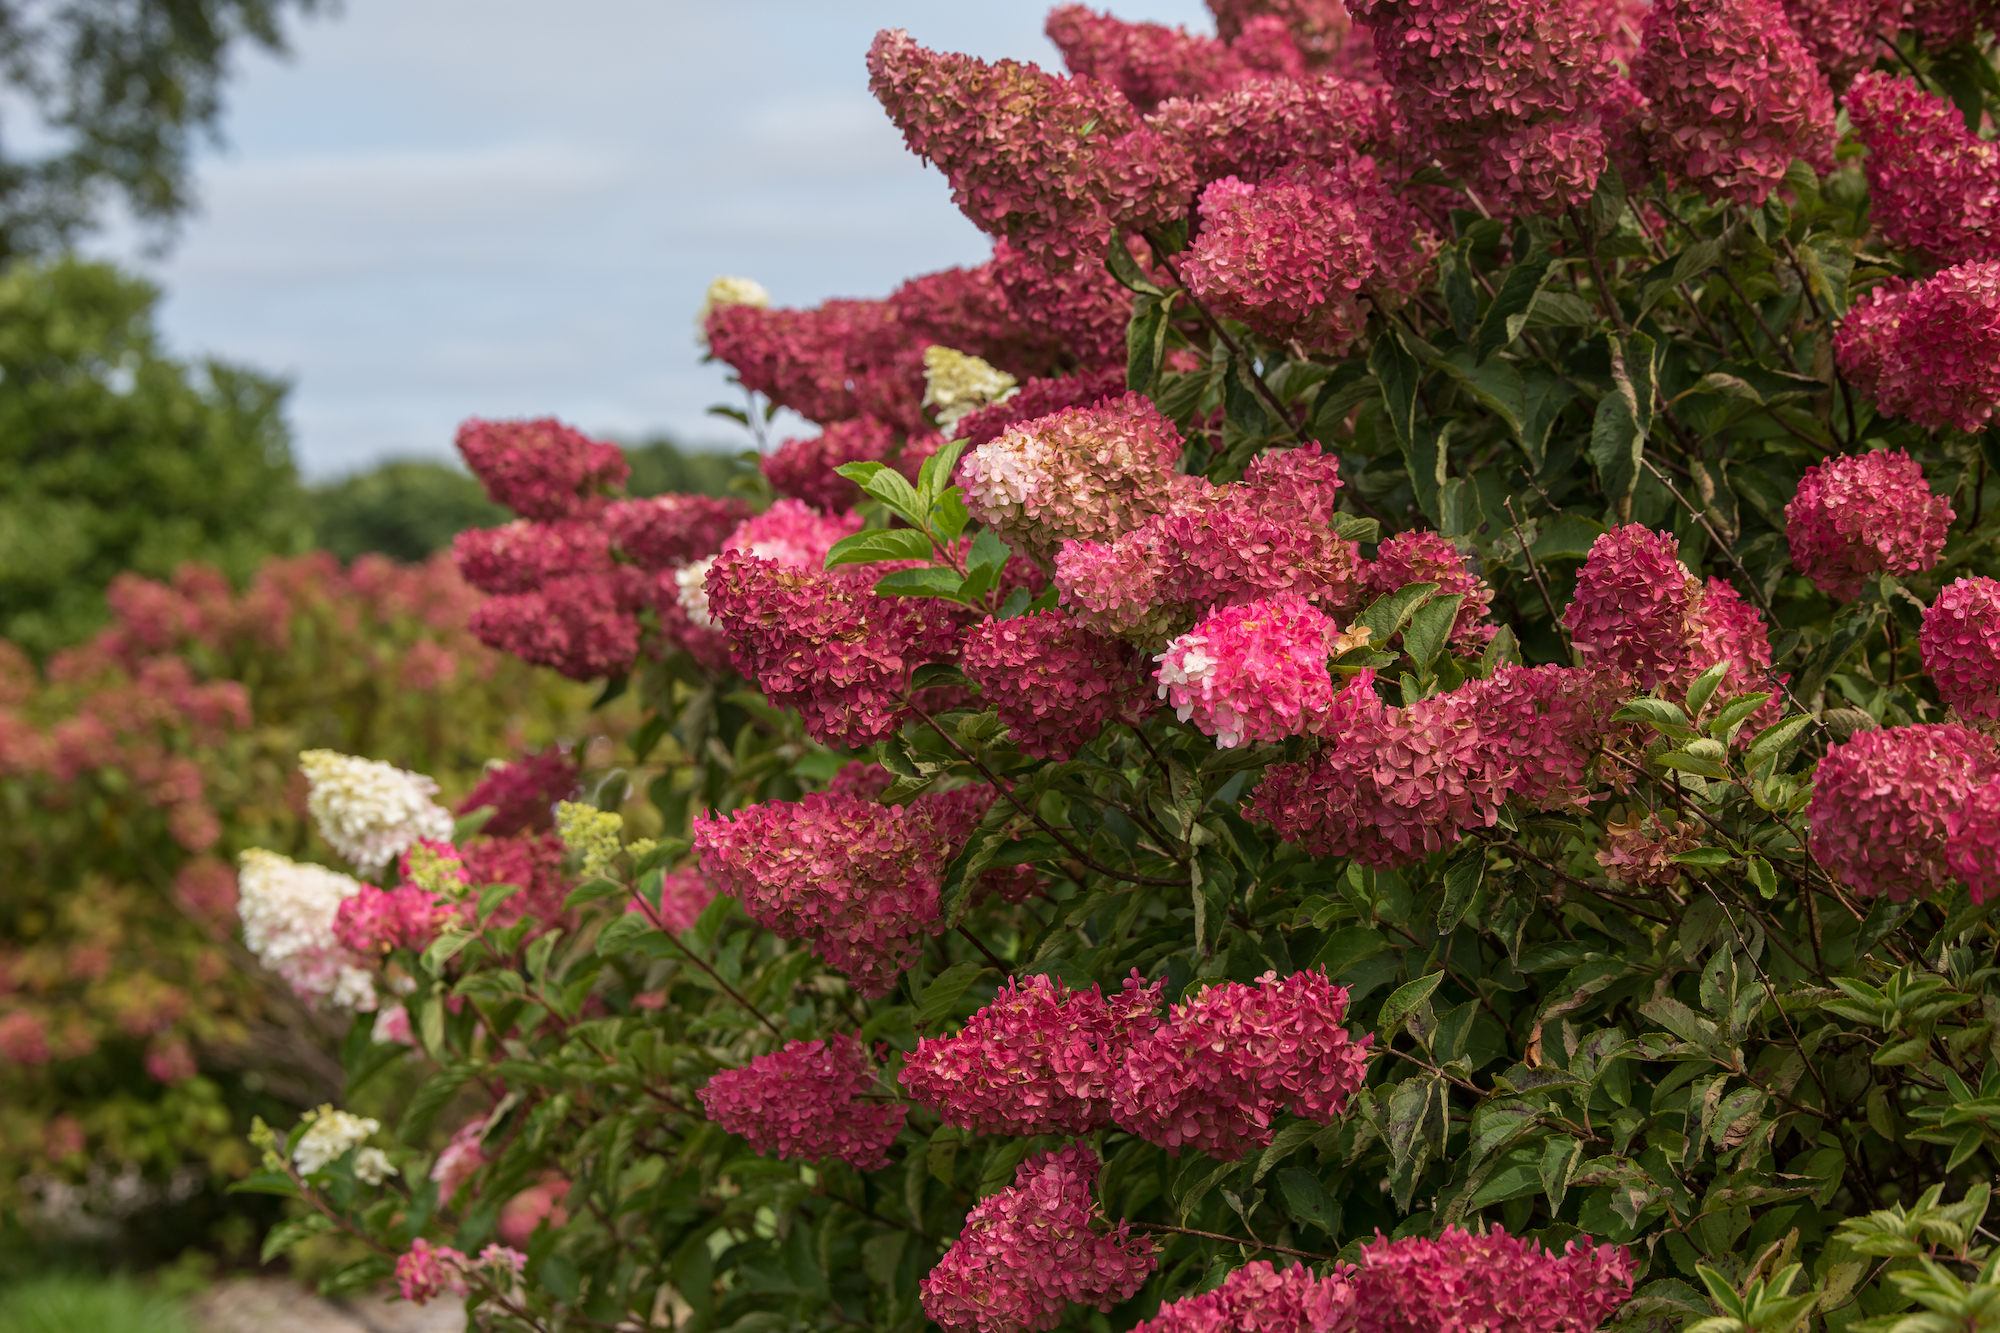 Berry White Hydrangea with pink-red blooms